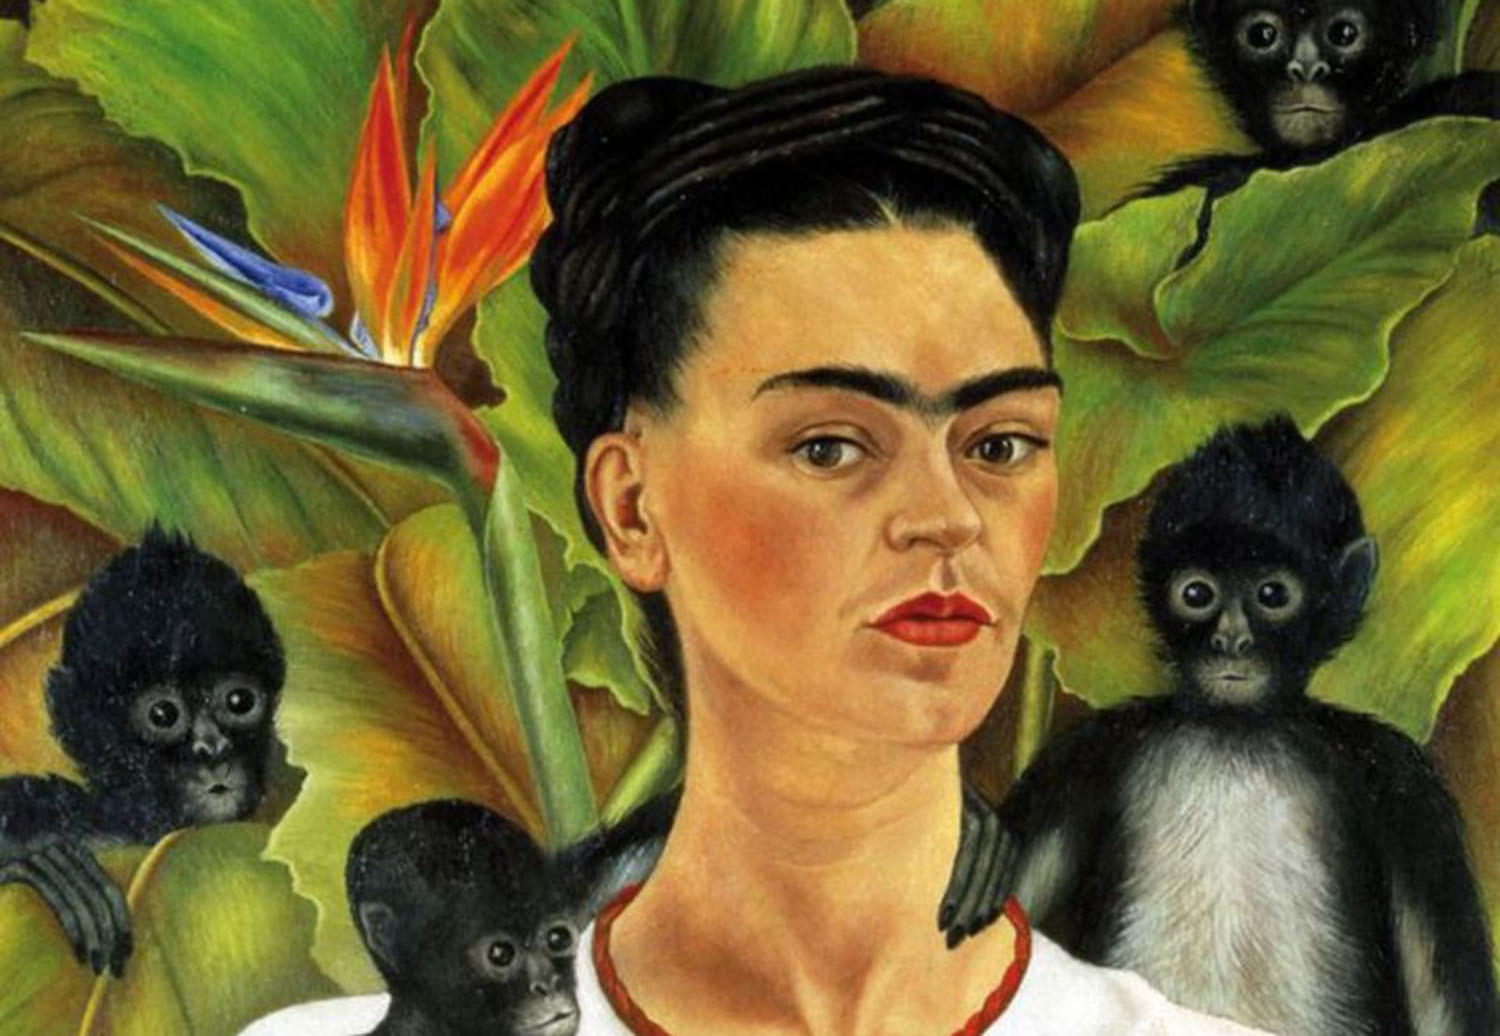 frida-kahlo-self-portrait-painexhibit-preview-frida-diego-passion-politics-and-painting-ifwhqtrb